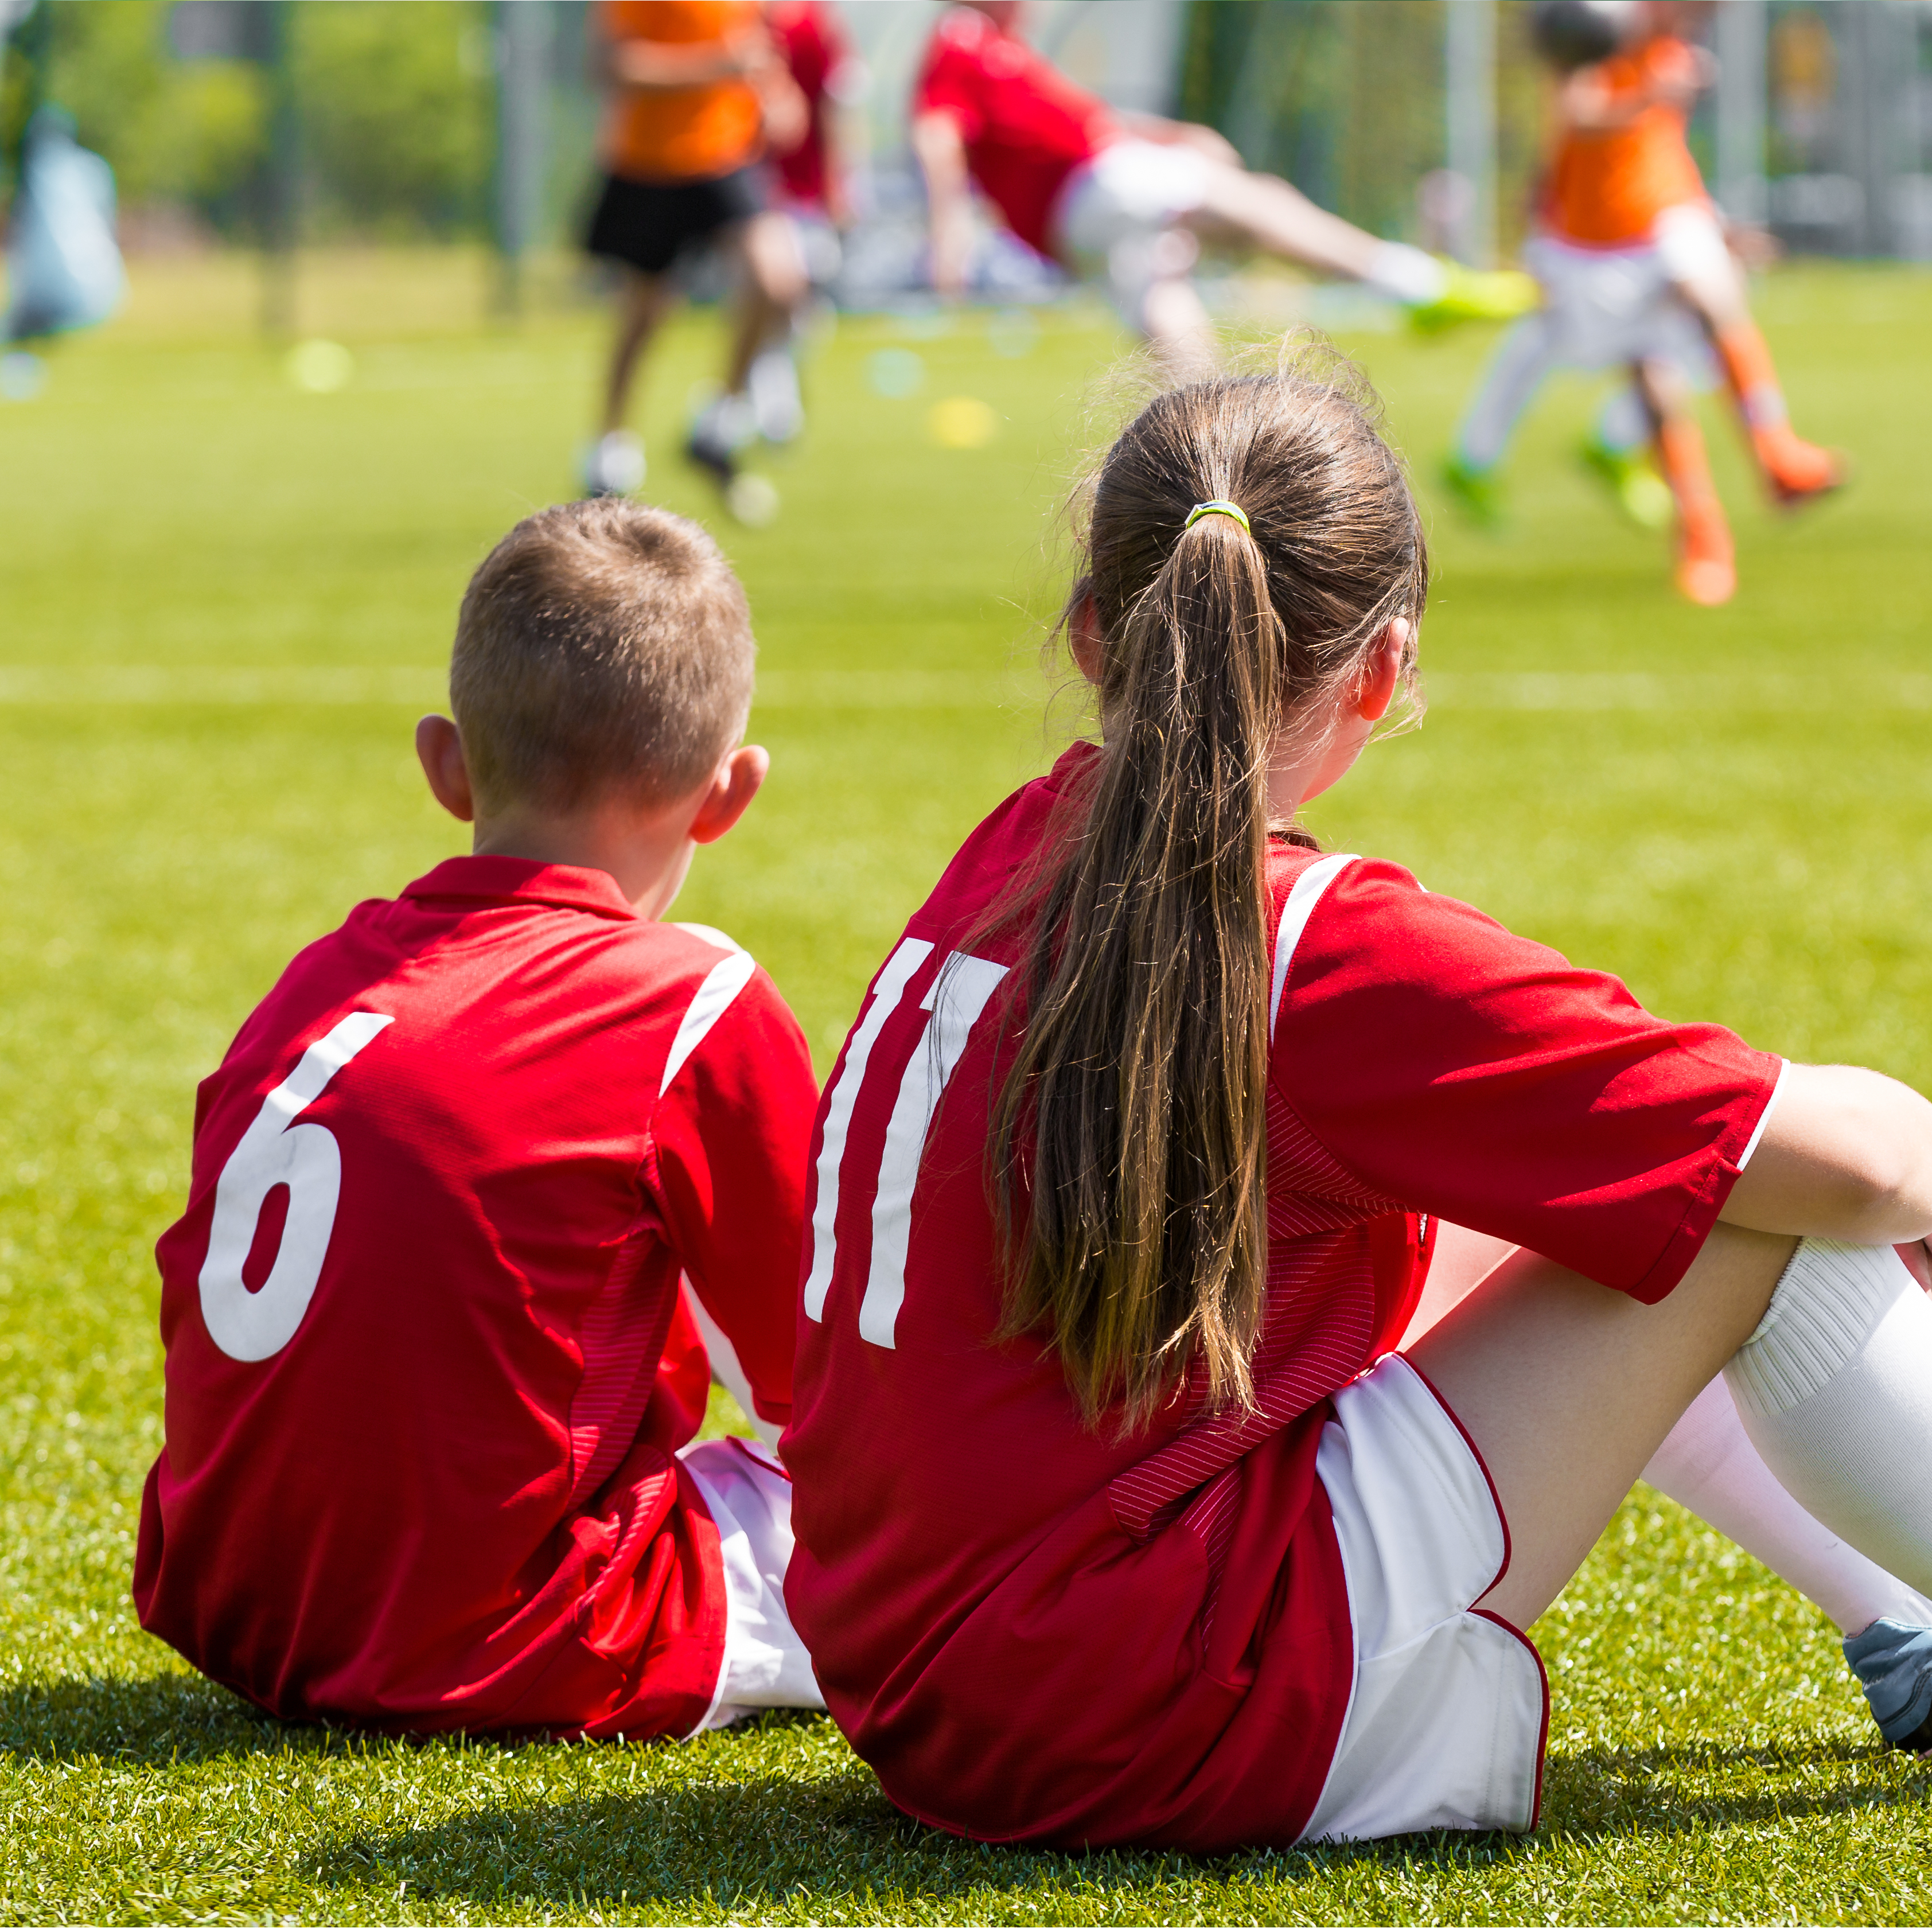 Two soccer players sitting on the grass with their backs to the camera.